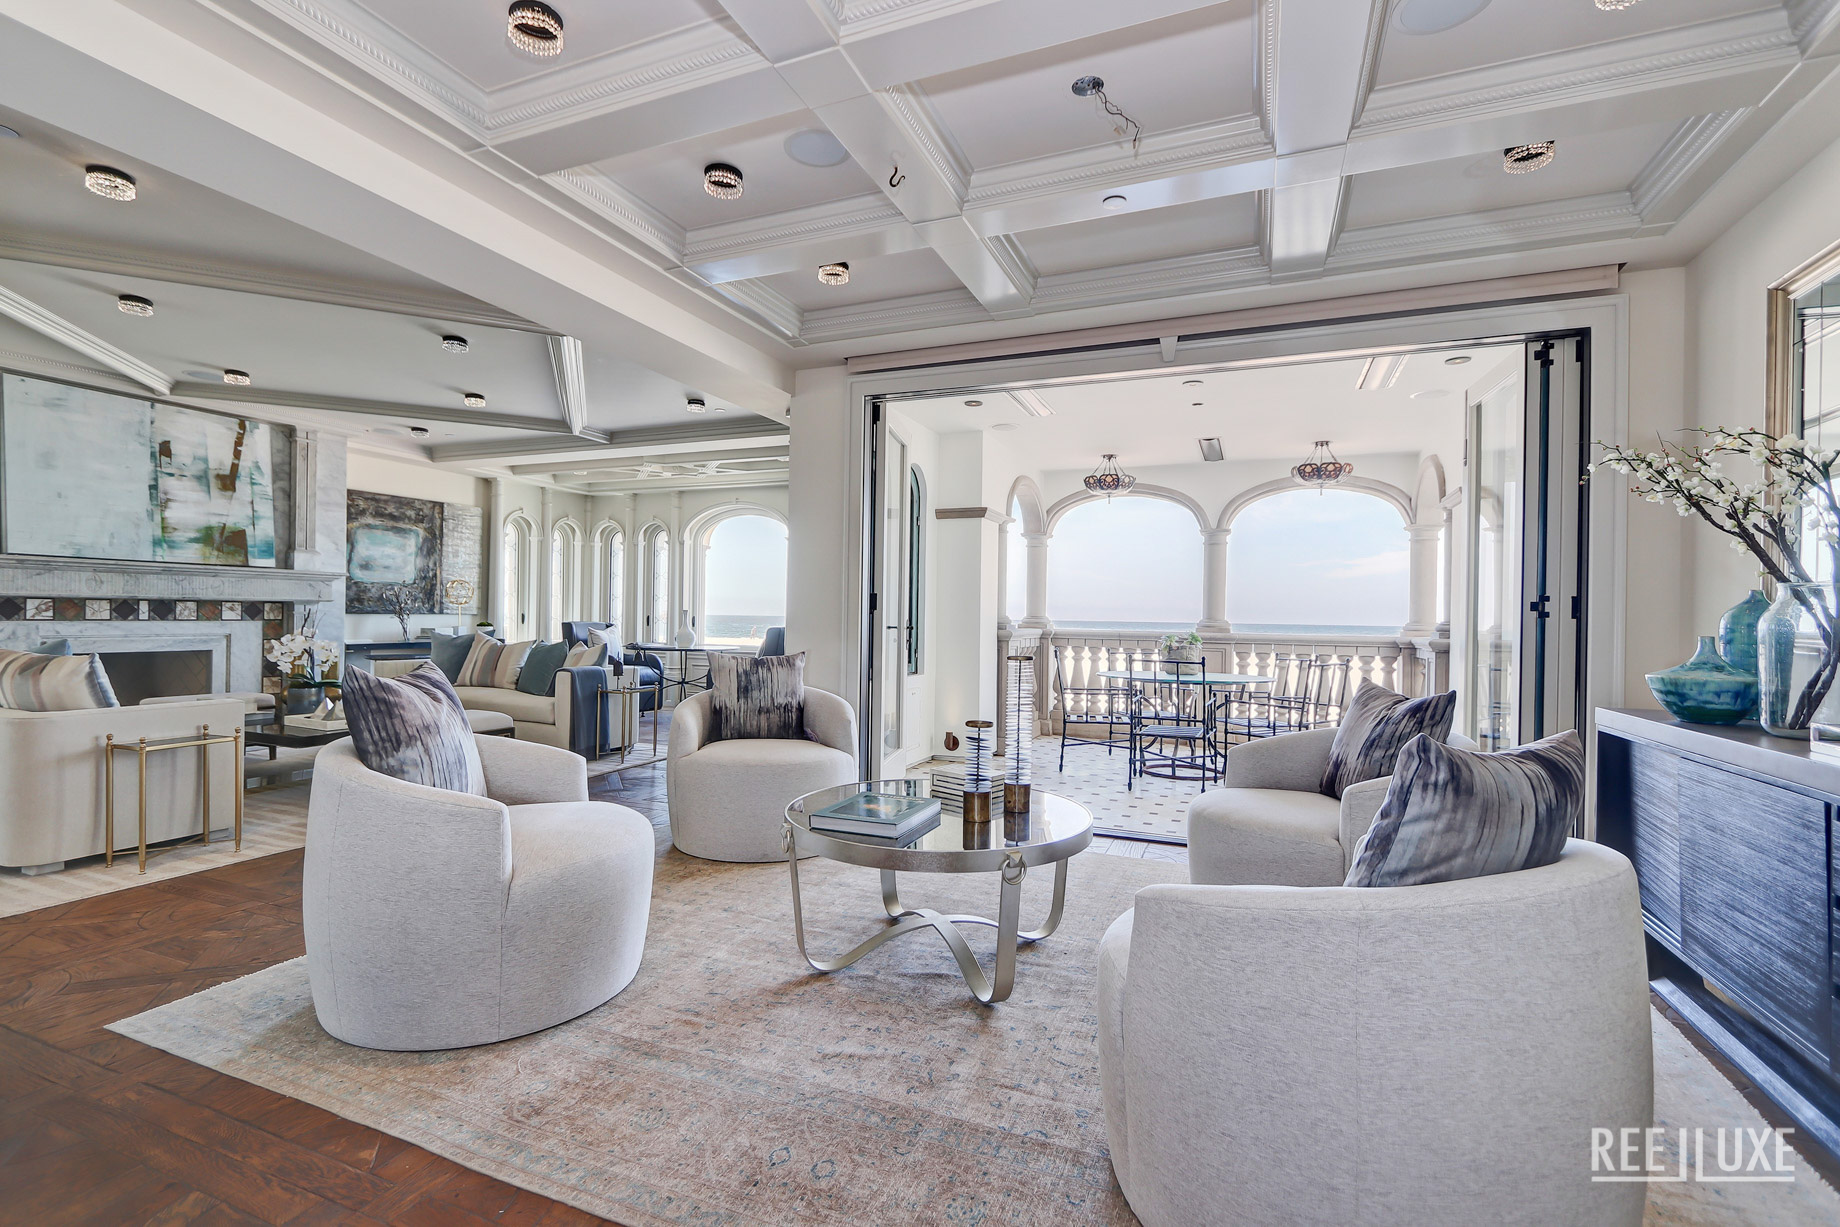 Oceanfront Luxury Exemplified - 2806 The Strand, Hermosa Beach, CA, USA - Living Room